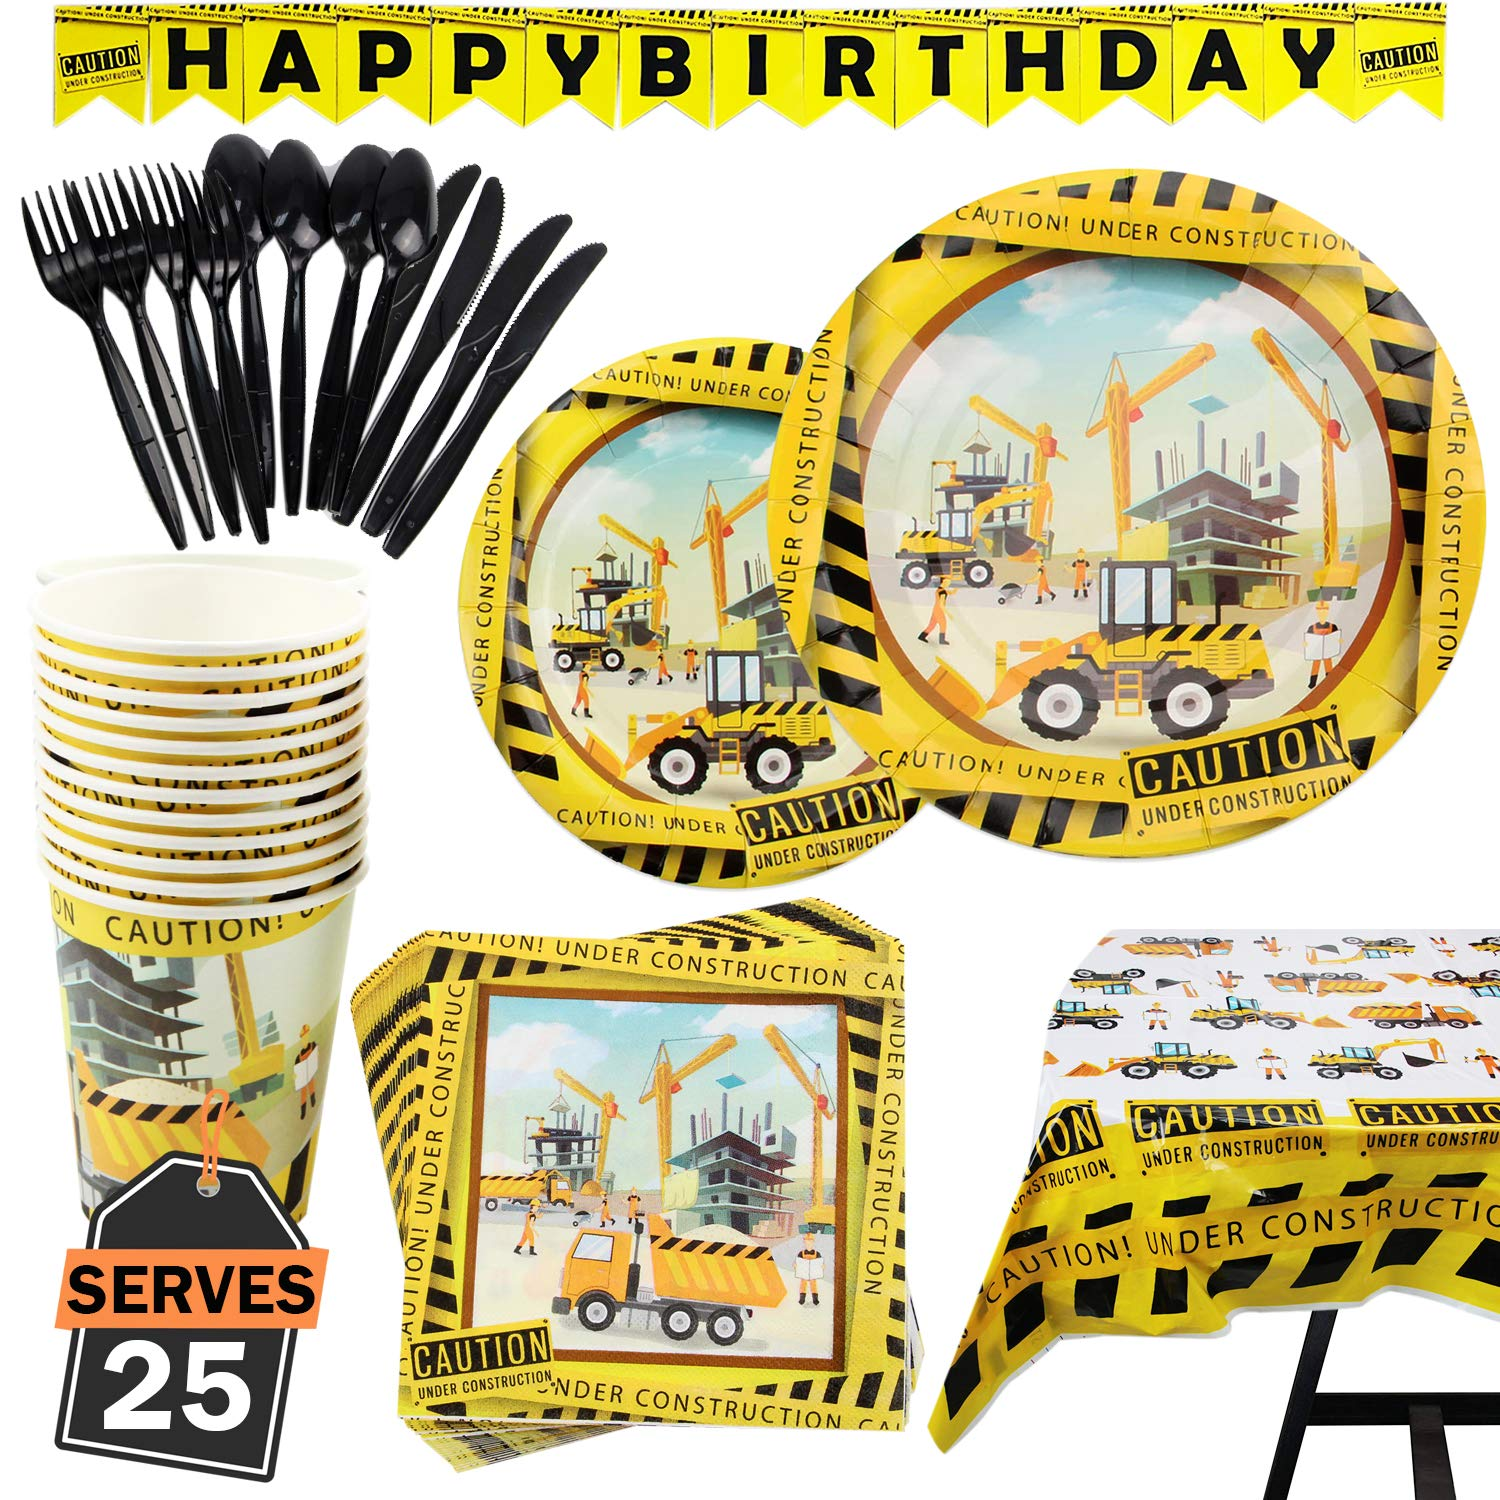 177 Piece Construction Party Supplies Set Including Plates, Cups, Napkins, Spoons, Forks, Knives, Tablecloth and Banner, Serves 25